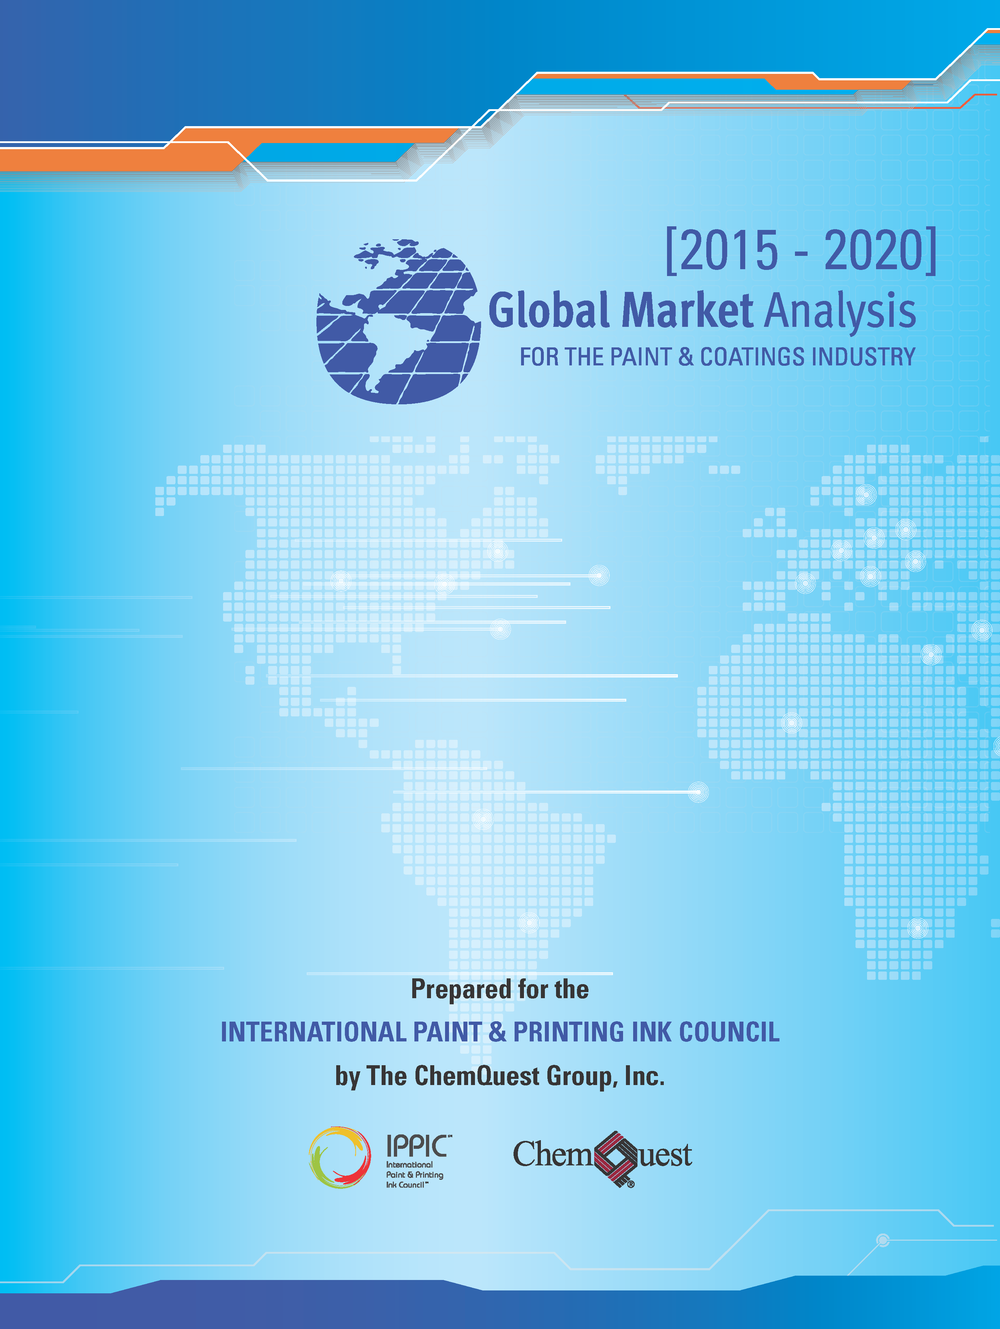 IPPIC Global Market Analysis